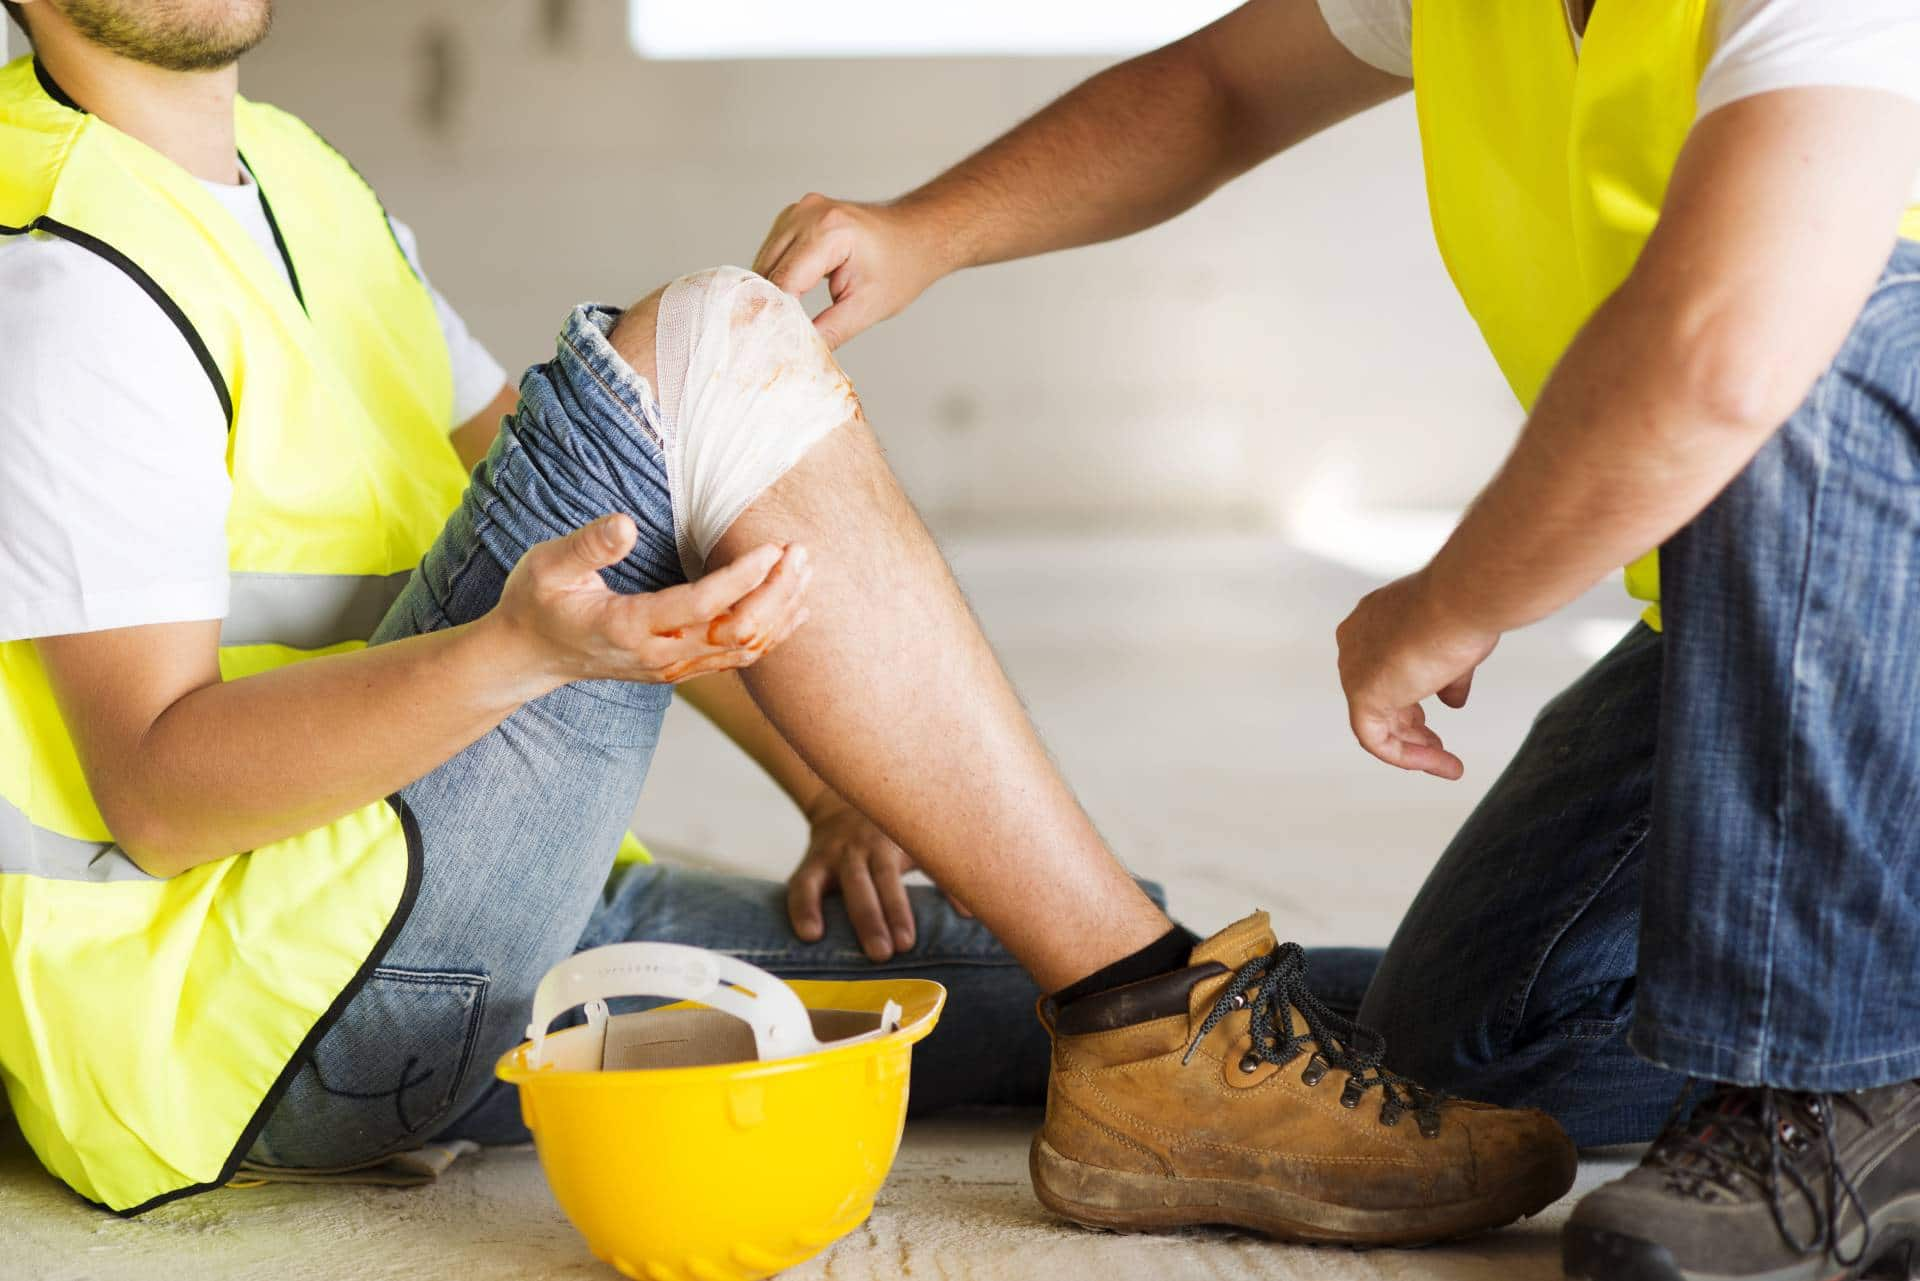 Injured on the job? Schedule a free consultation with our personal injury lawyers in Lithia Springs.